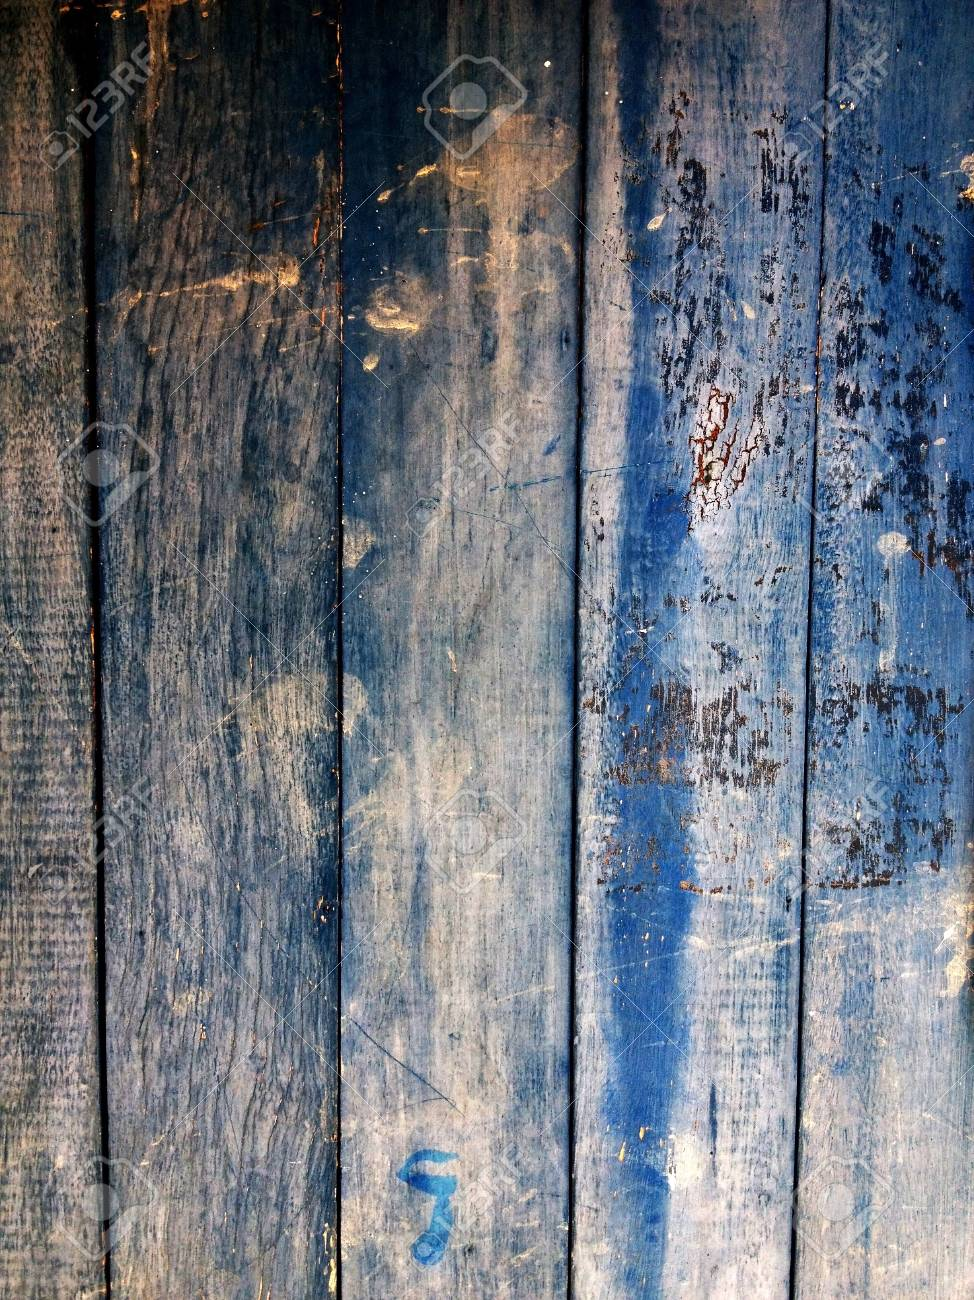 Abstract Grunge Old Wood Background Stock Photo - 14347547